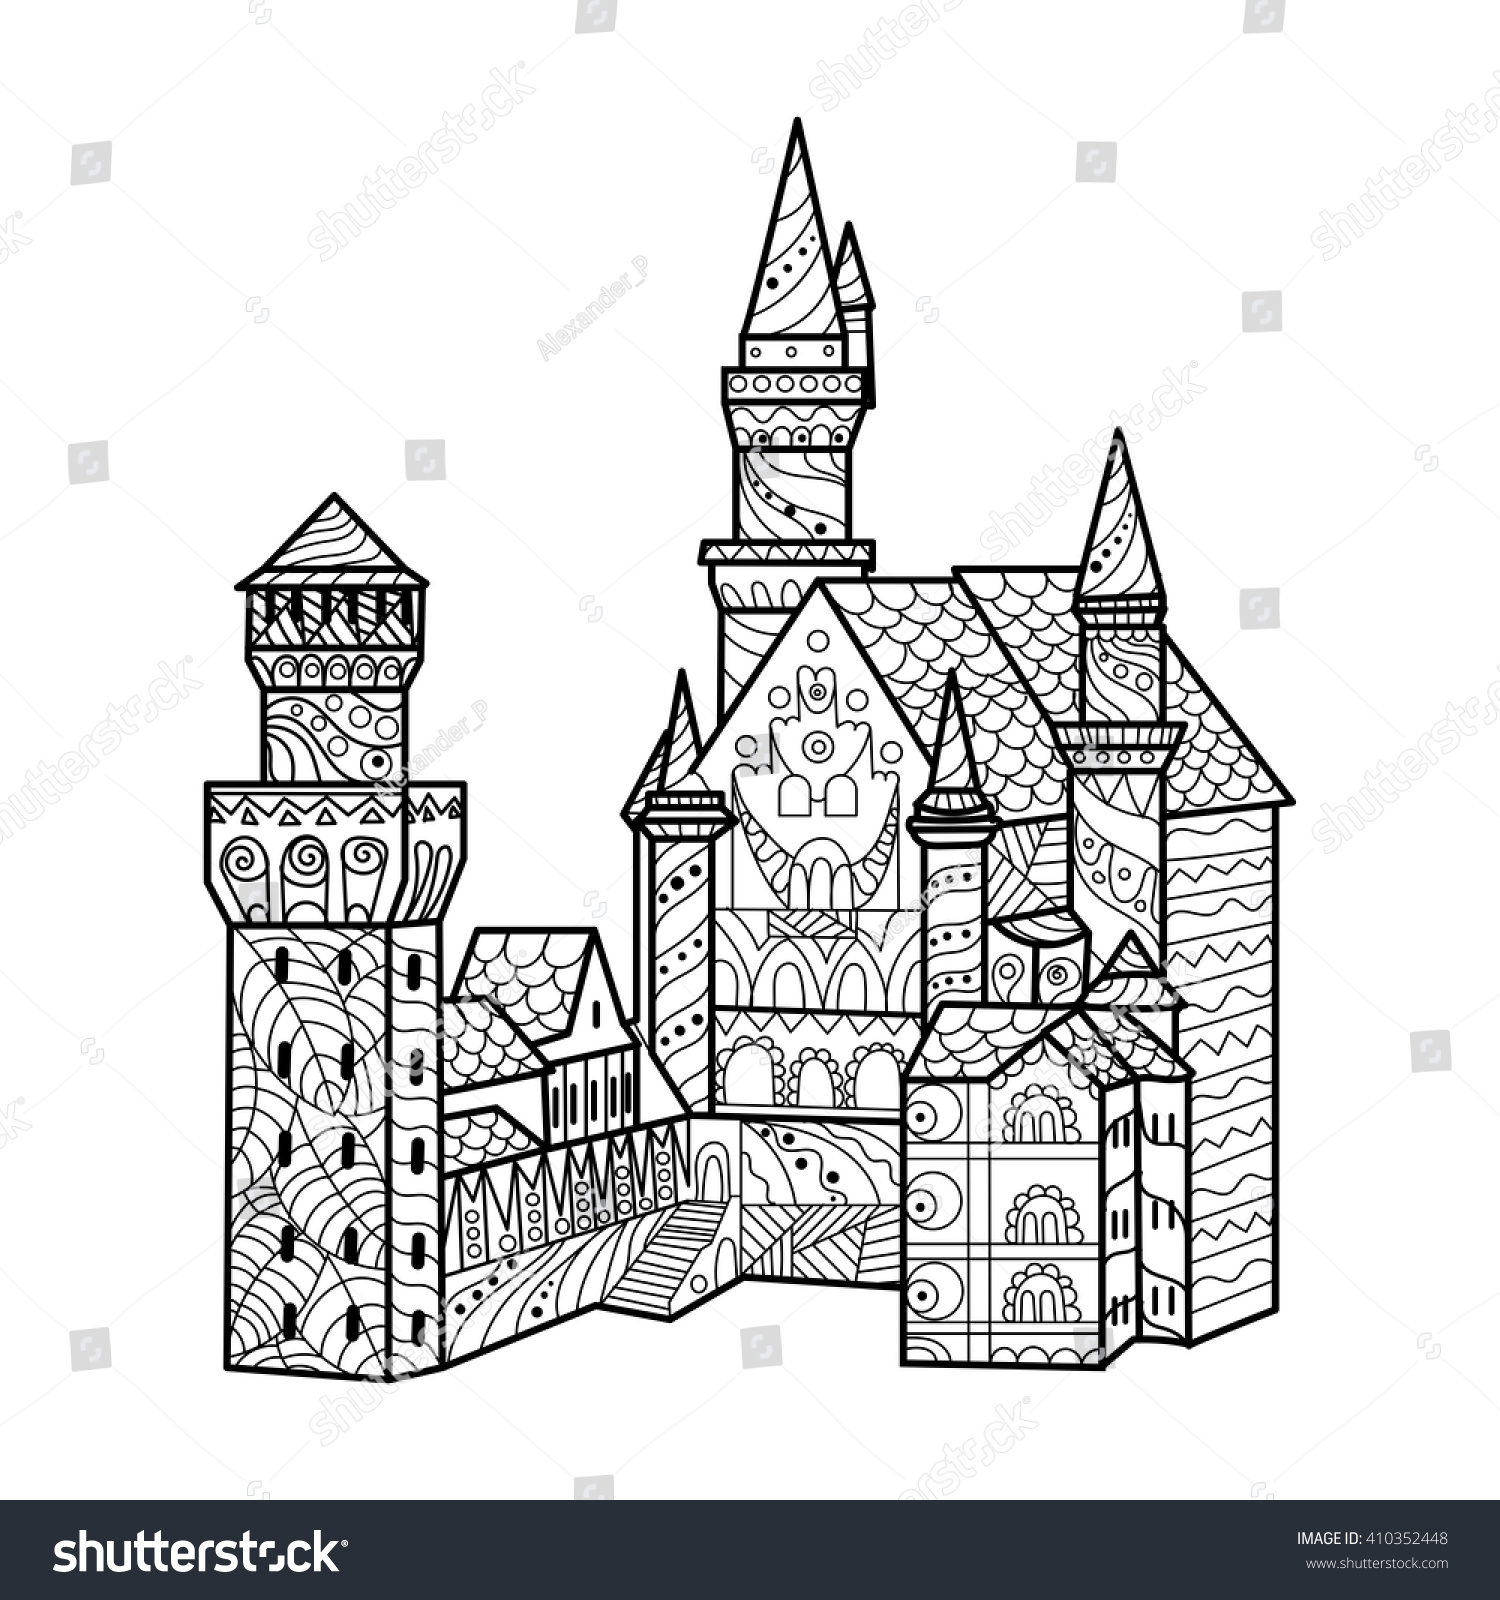 Coloring book landmark for adults - Medieval Castle Coloring Book For Adults Vector Illustration